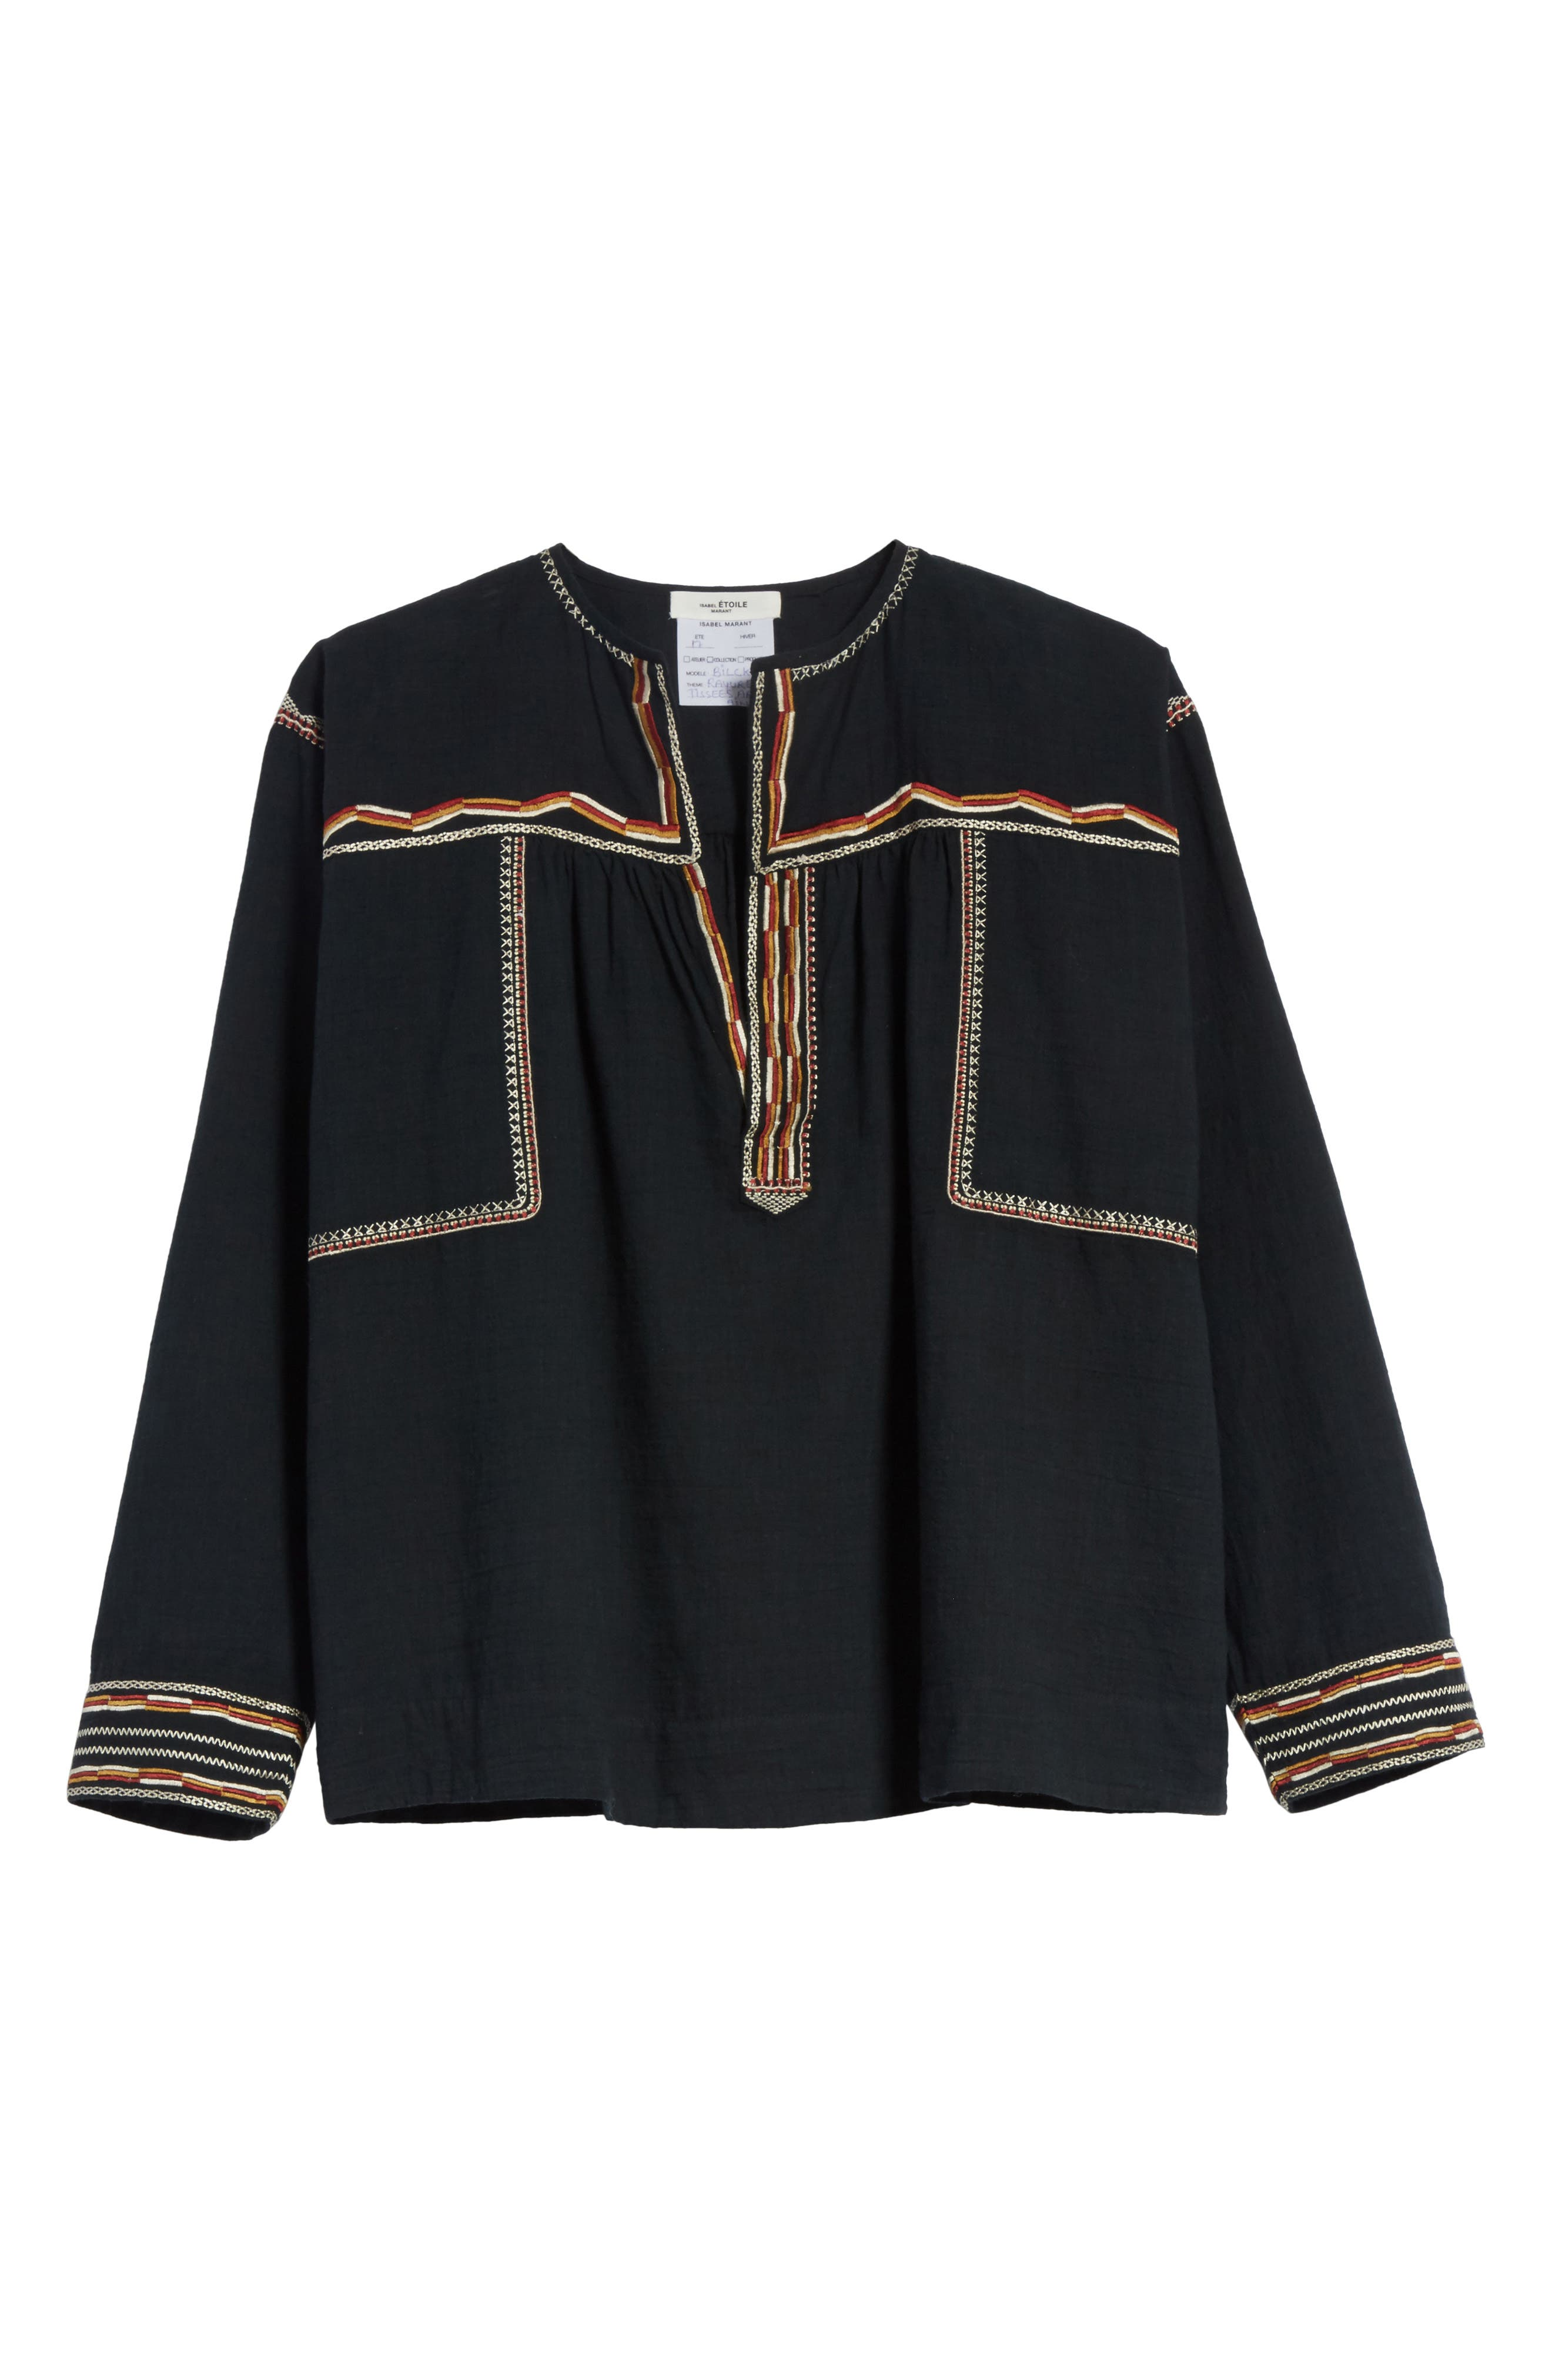 Isabel Marant Étoile Blicky Embroidered Top,                             Alternate thumbnail 6, color,                             001